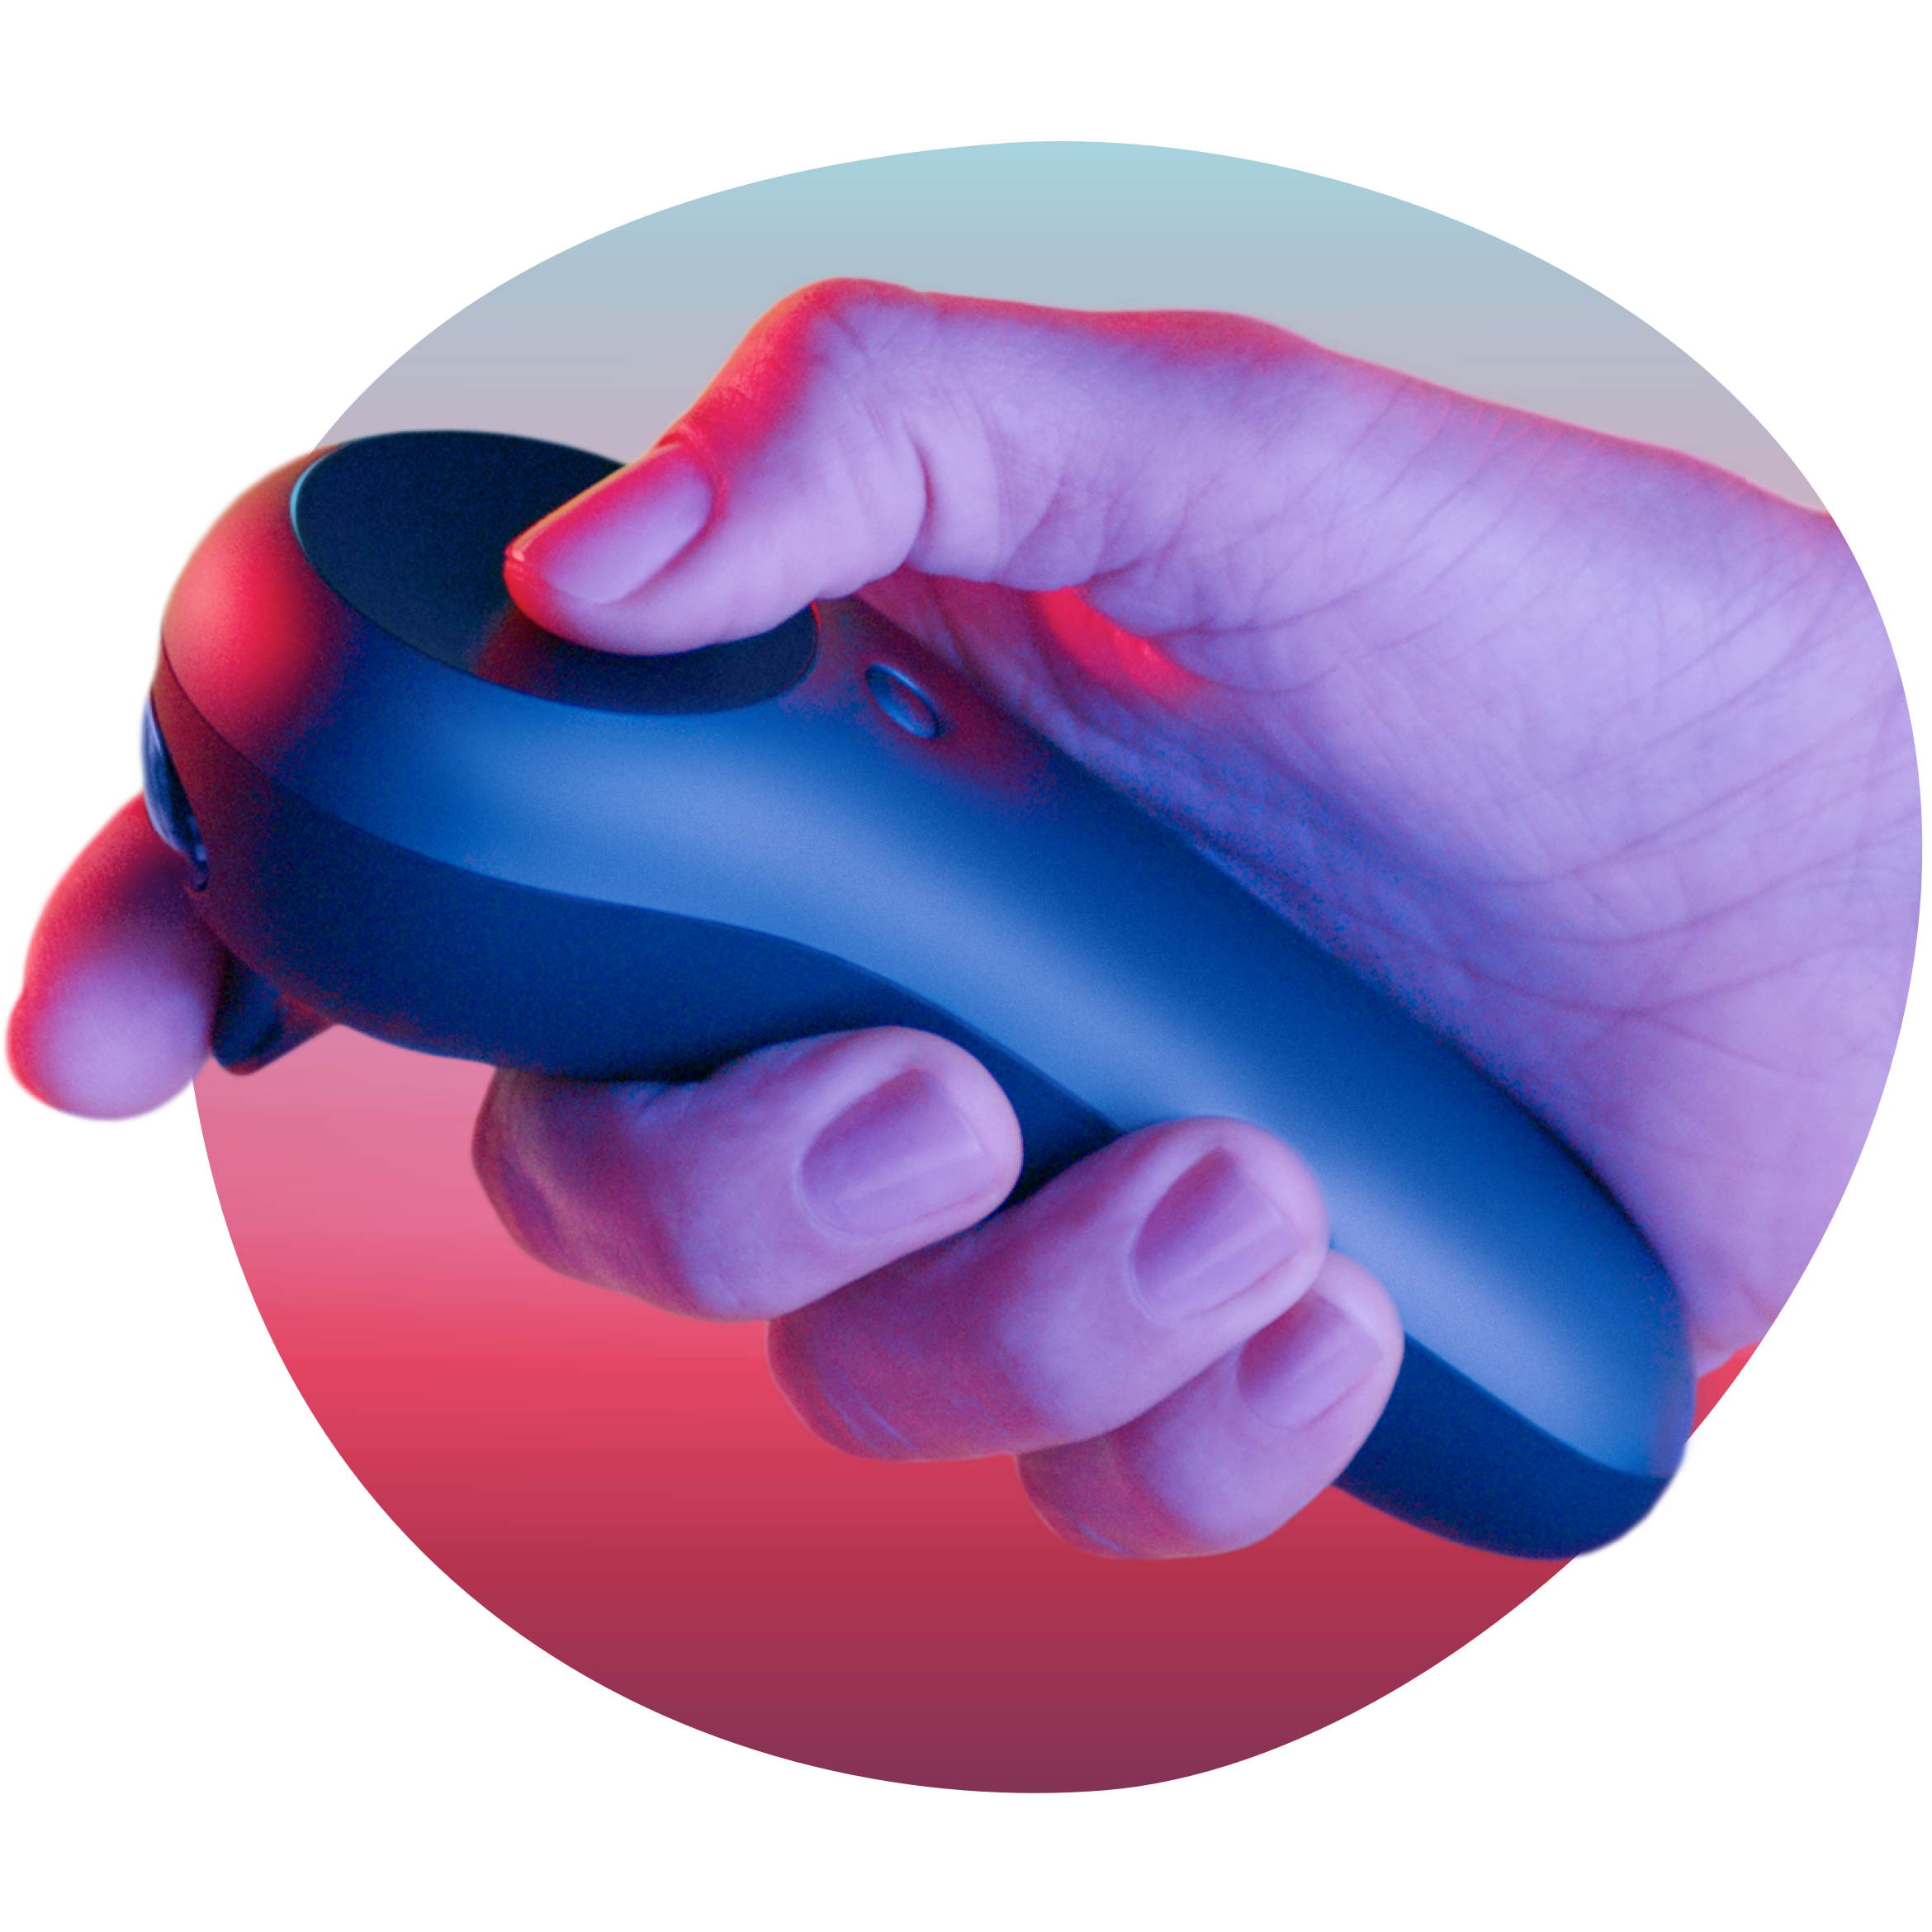 Hand holding Magic Leap One's Control device lit by neon lights in a sphere